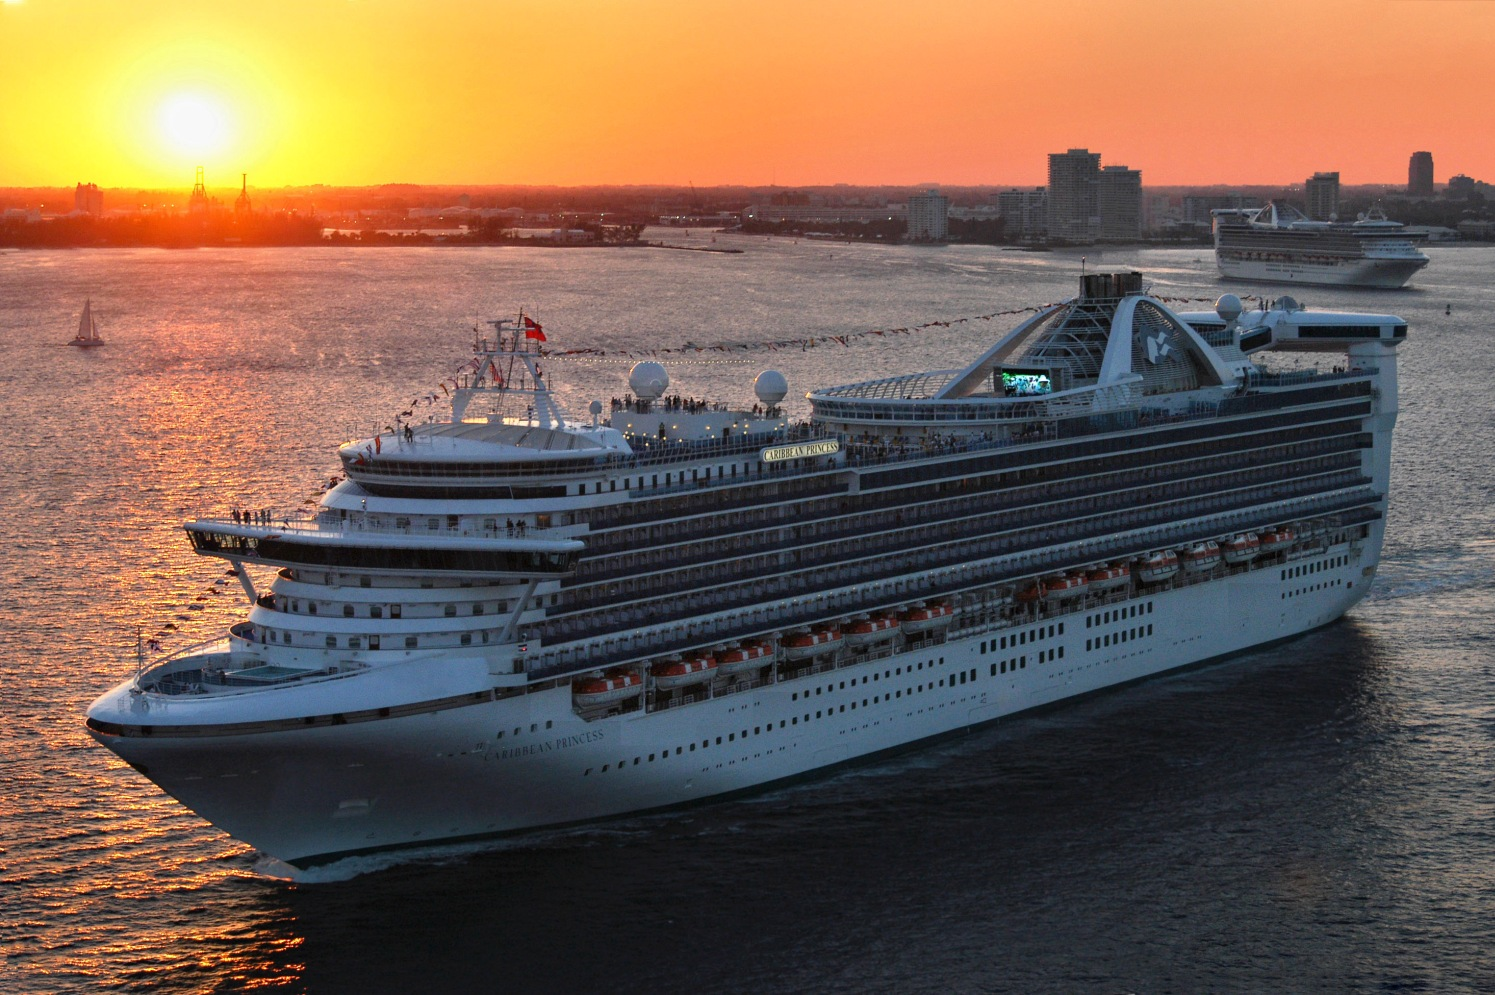 Princess Cruises Announces Extended Suspension Of Cruises Through June 30, 2020 And Beyond